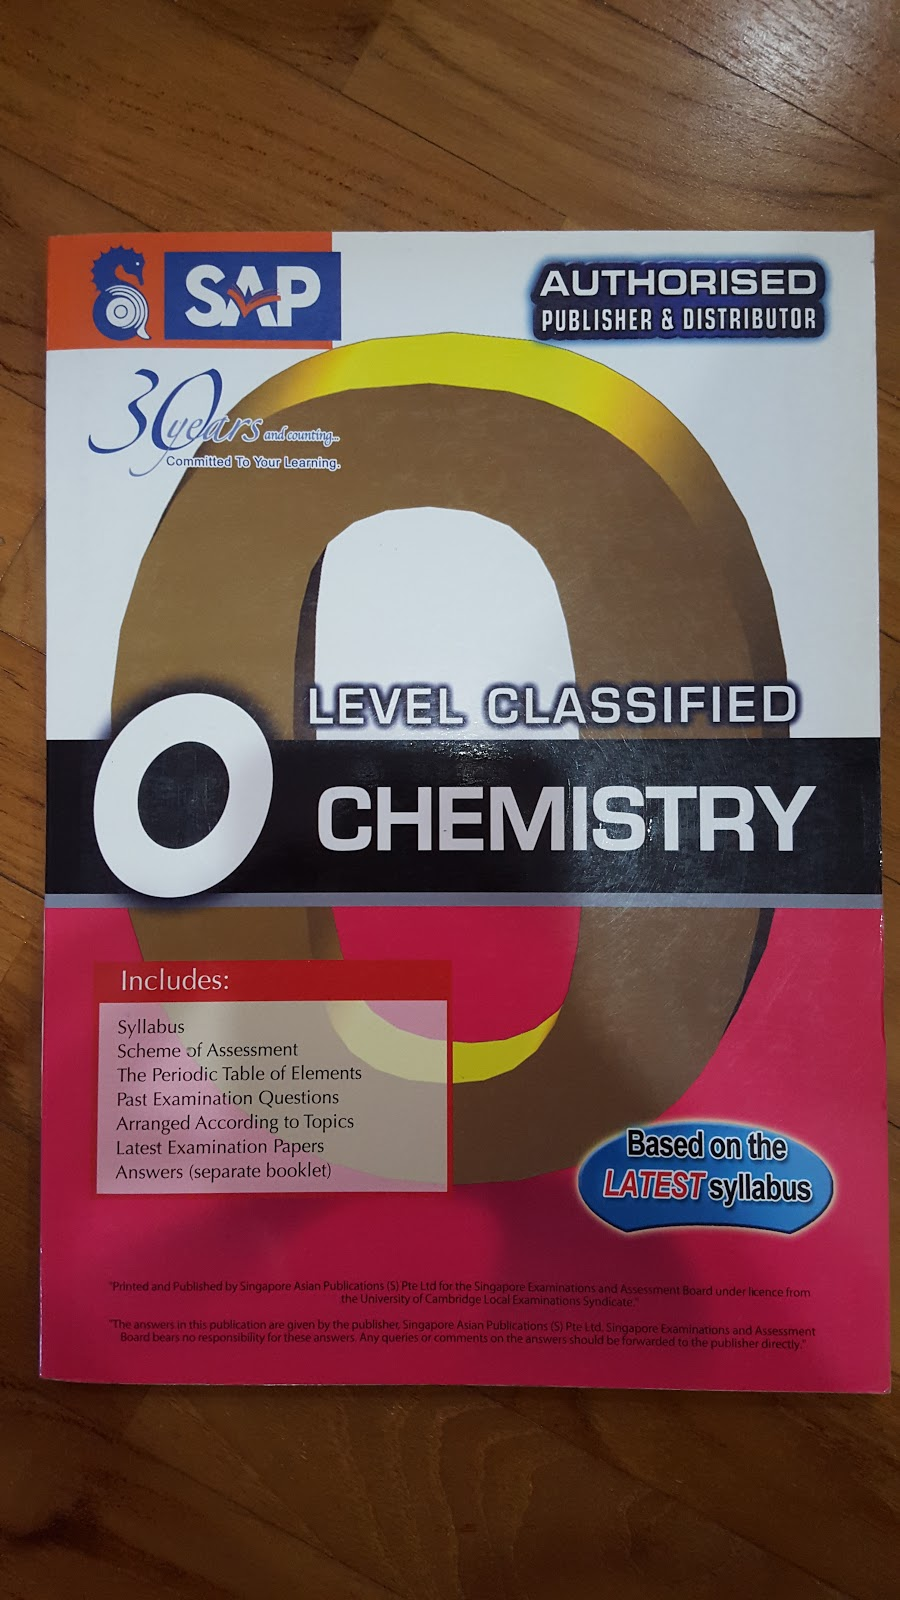 Second hand igcse and gce o level textbooks for sale o levels o level classified chemistry price 3990 3200 condition very good no markings or highlights description consists of past examination questions with urtaz Images